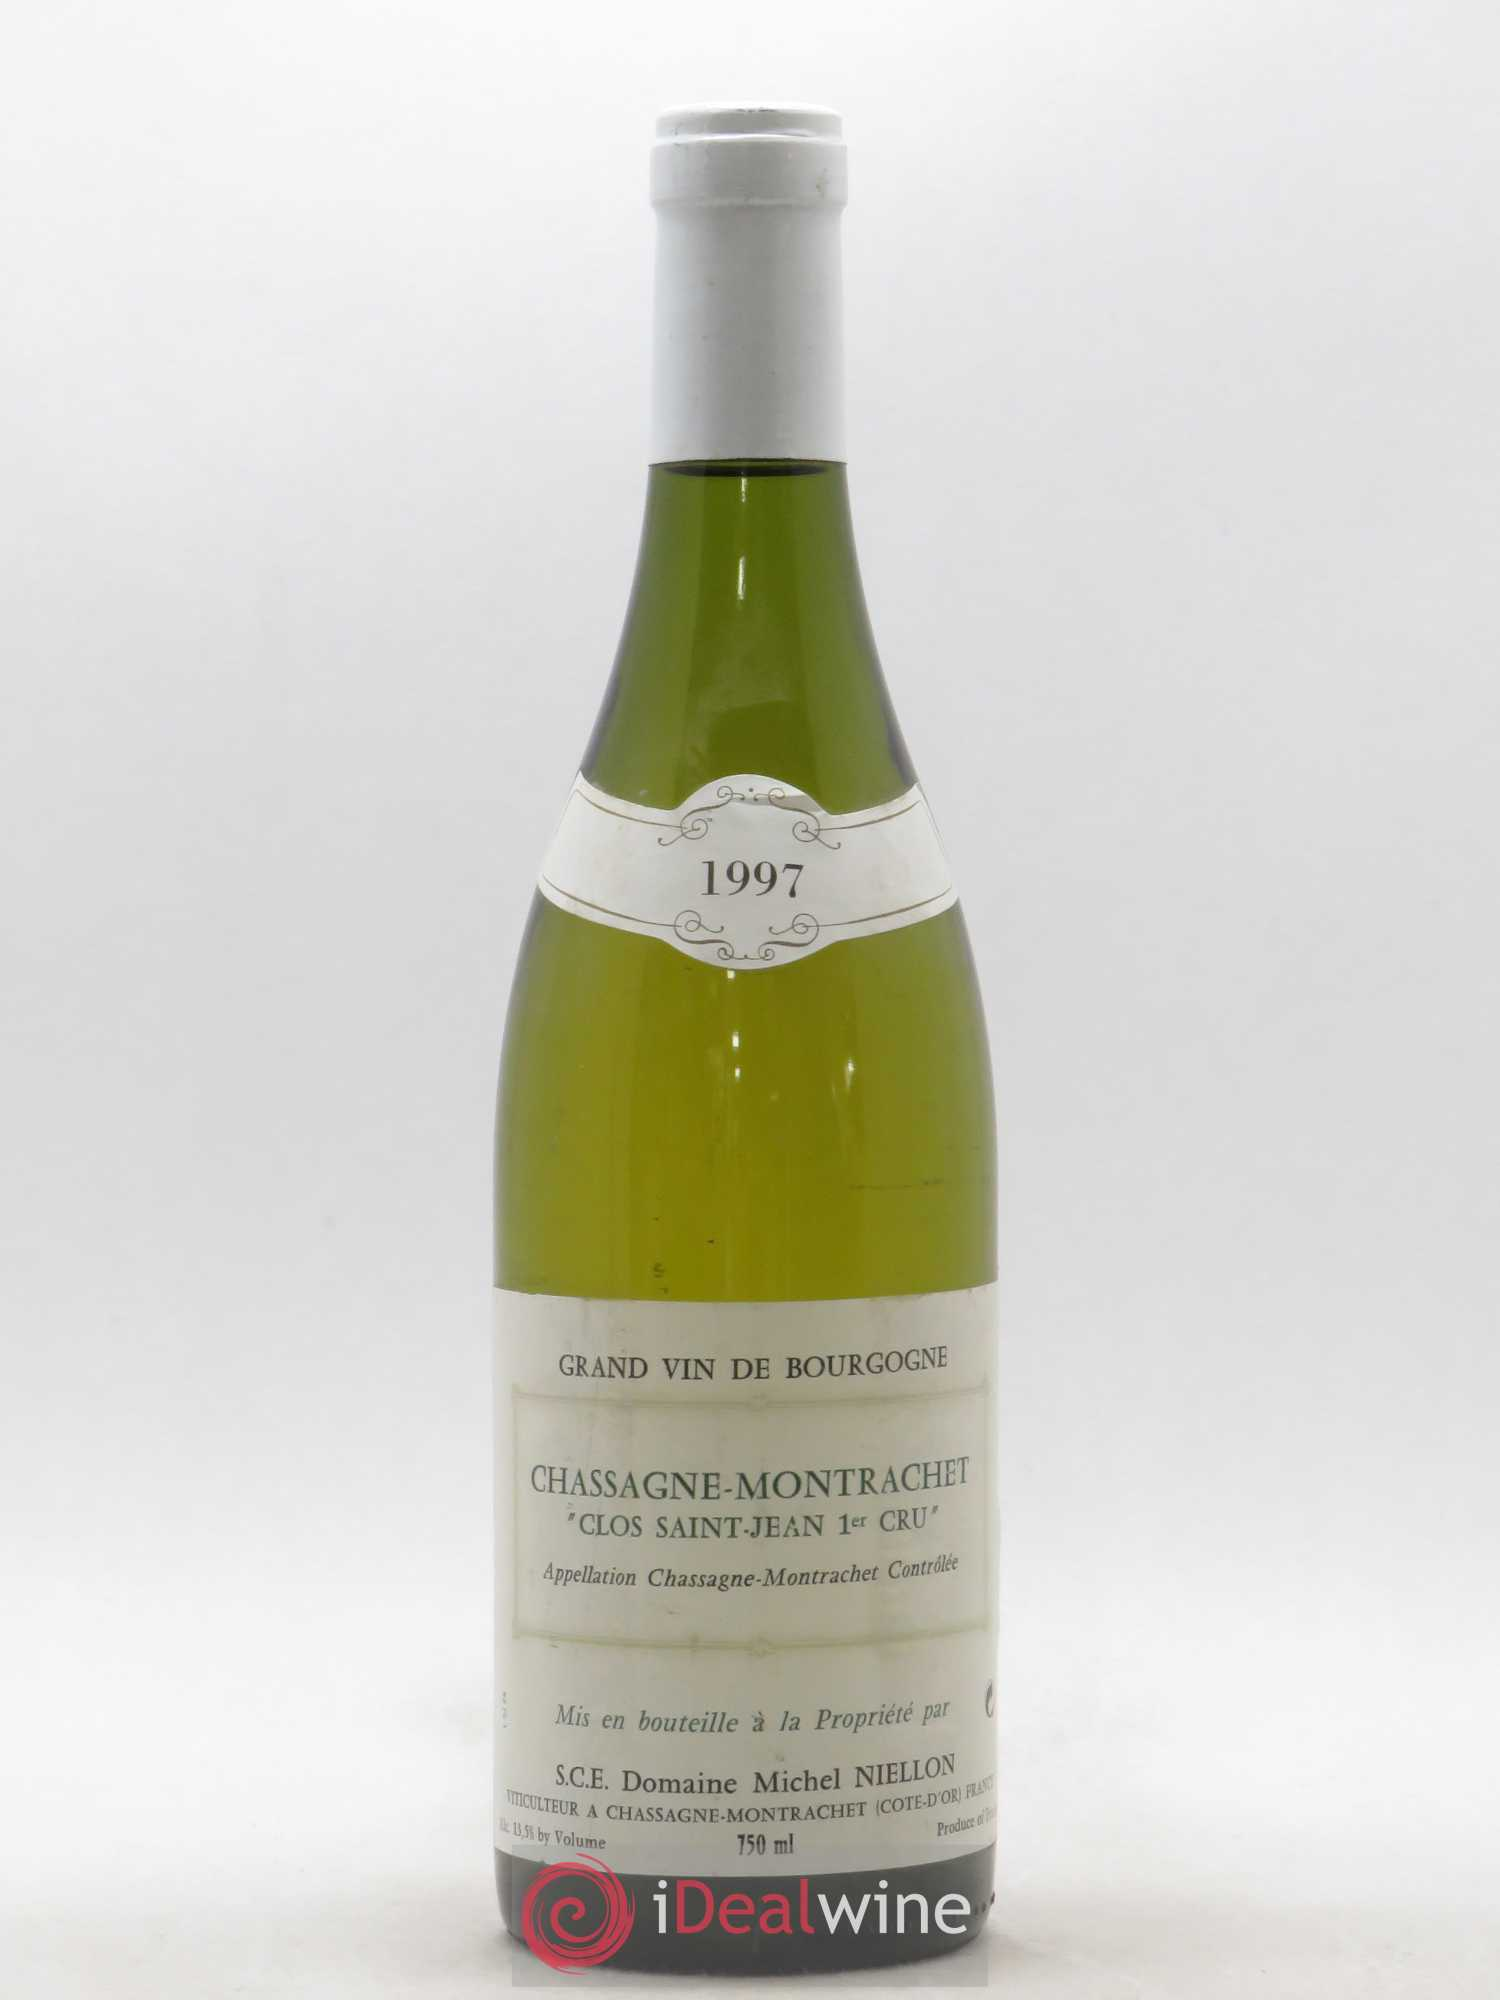 Chassagne-Montrachet 1er Cru Clos Saint Jean Michel Niellon (Domaine)  1997 - Lot of 1 Bottle